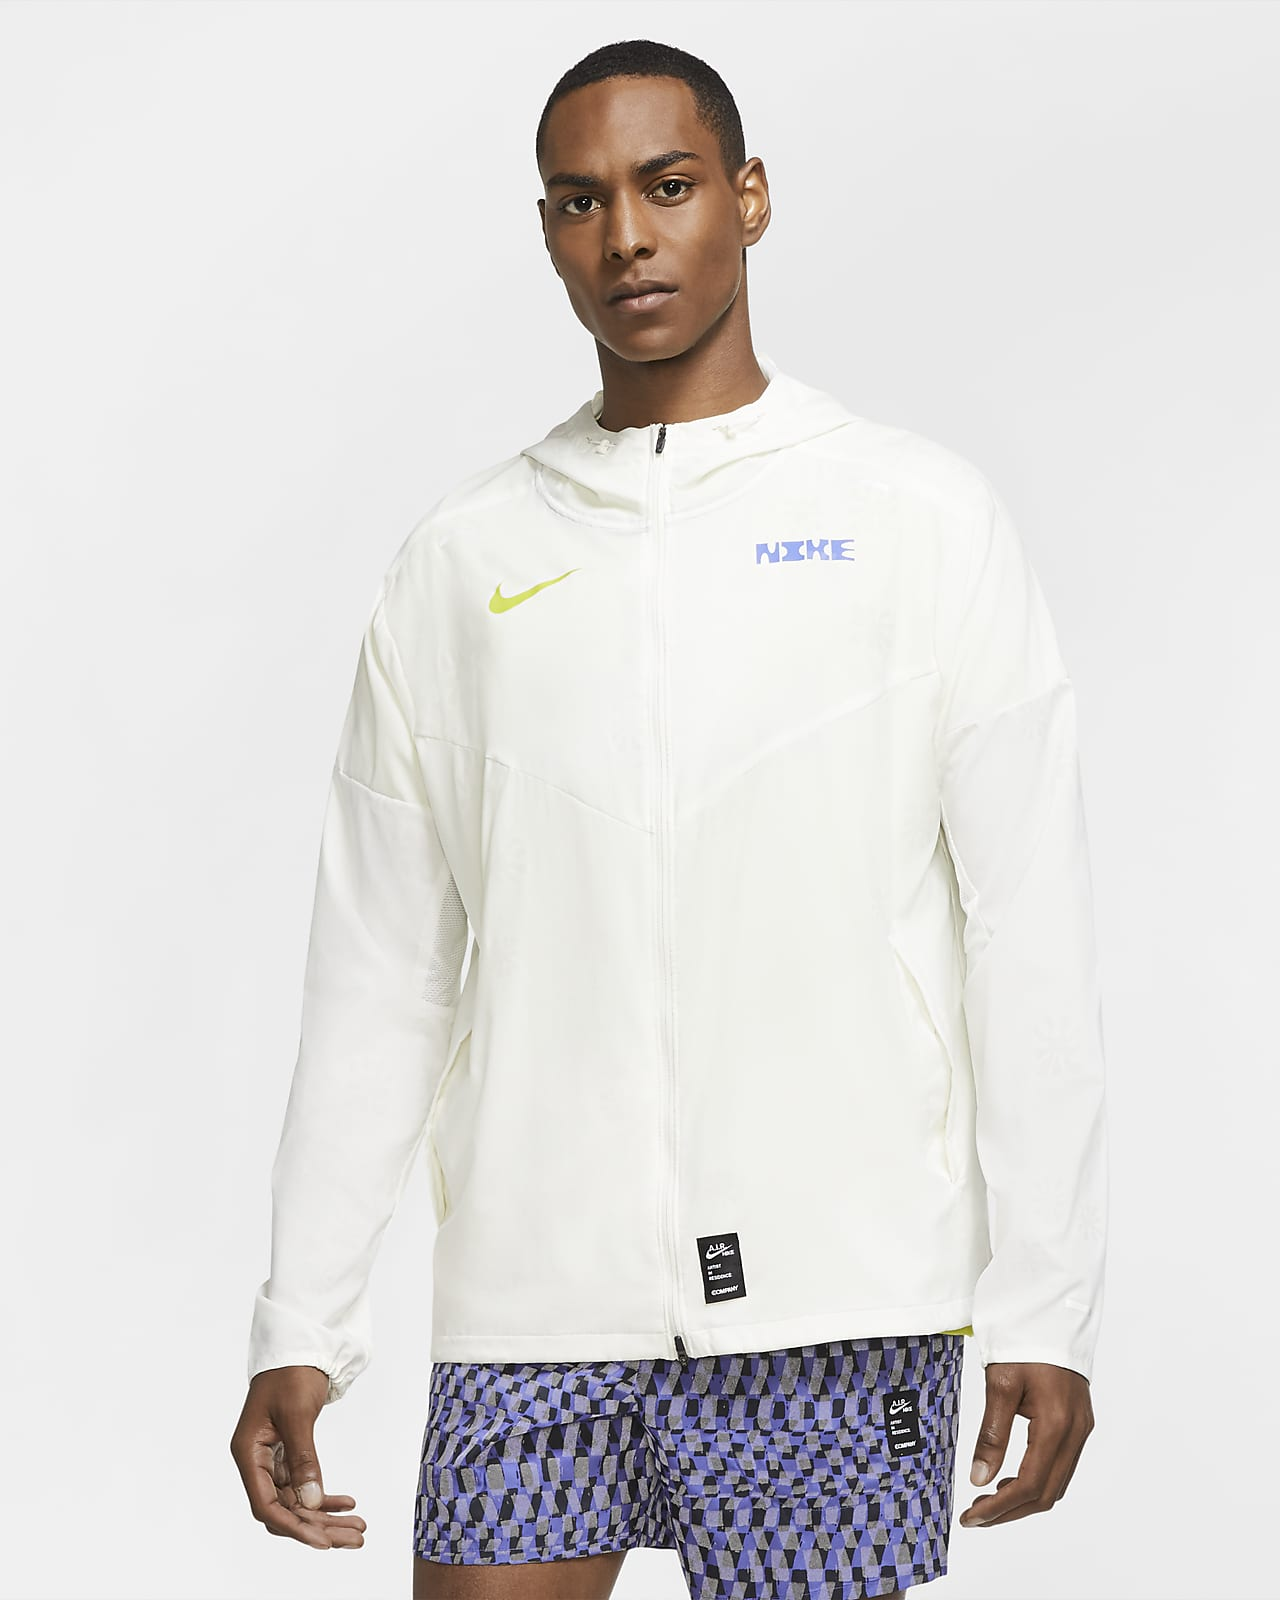 Nike Windrunner A.I.R. Chaz Bear Men's Running Jacket